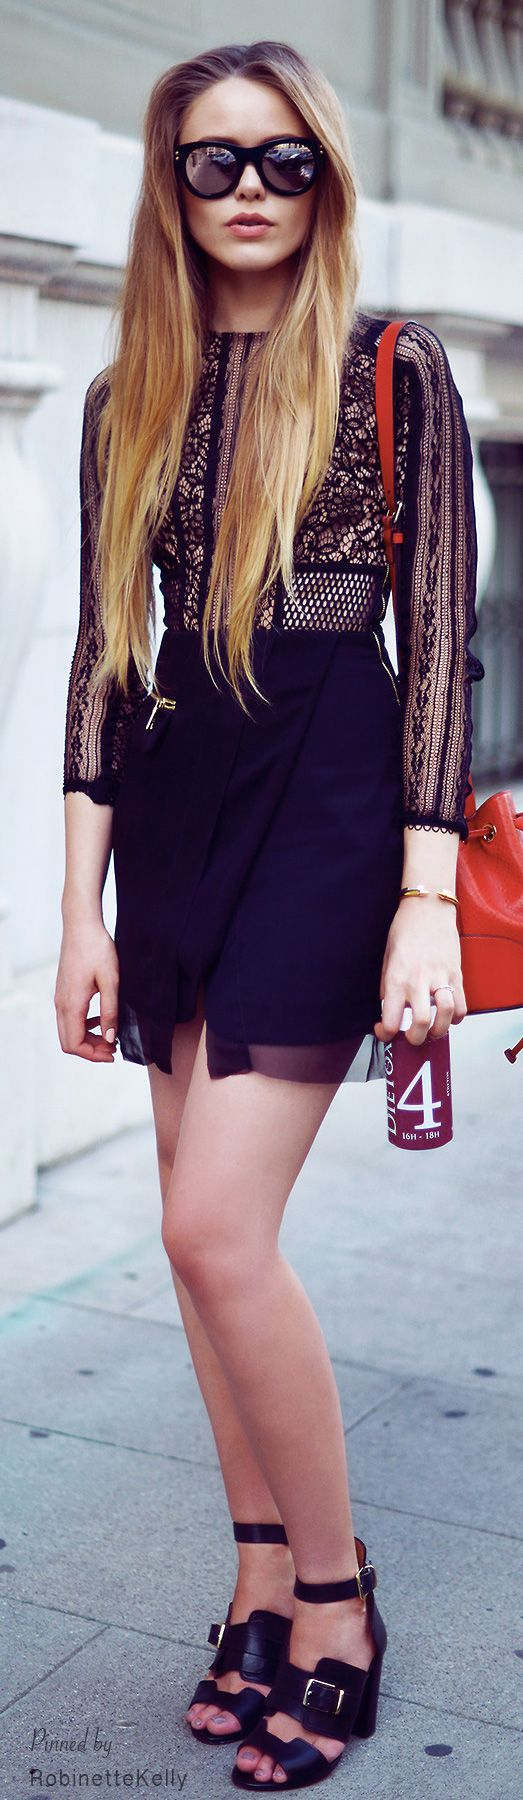 best fashion images on pinterest fall winter fashion casual